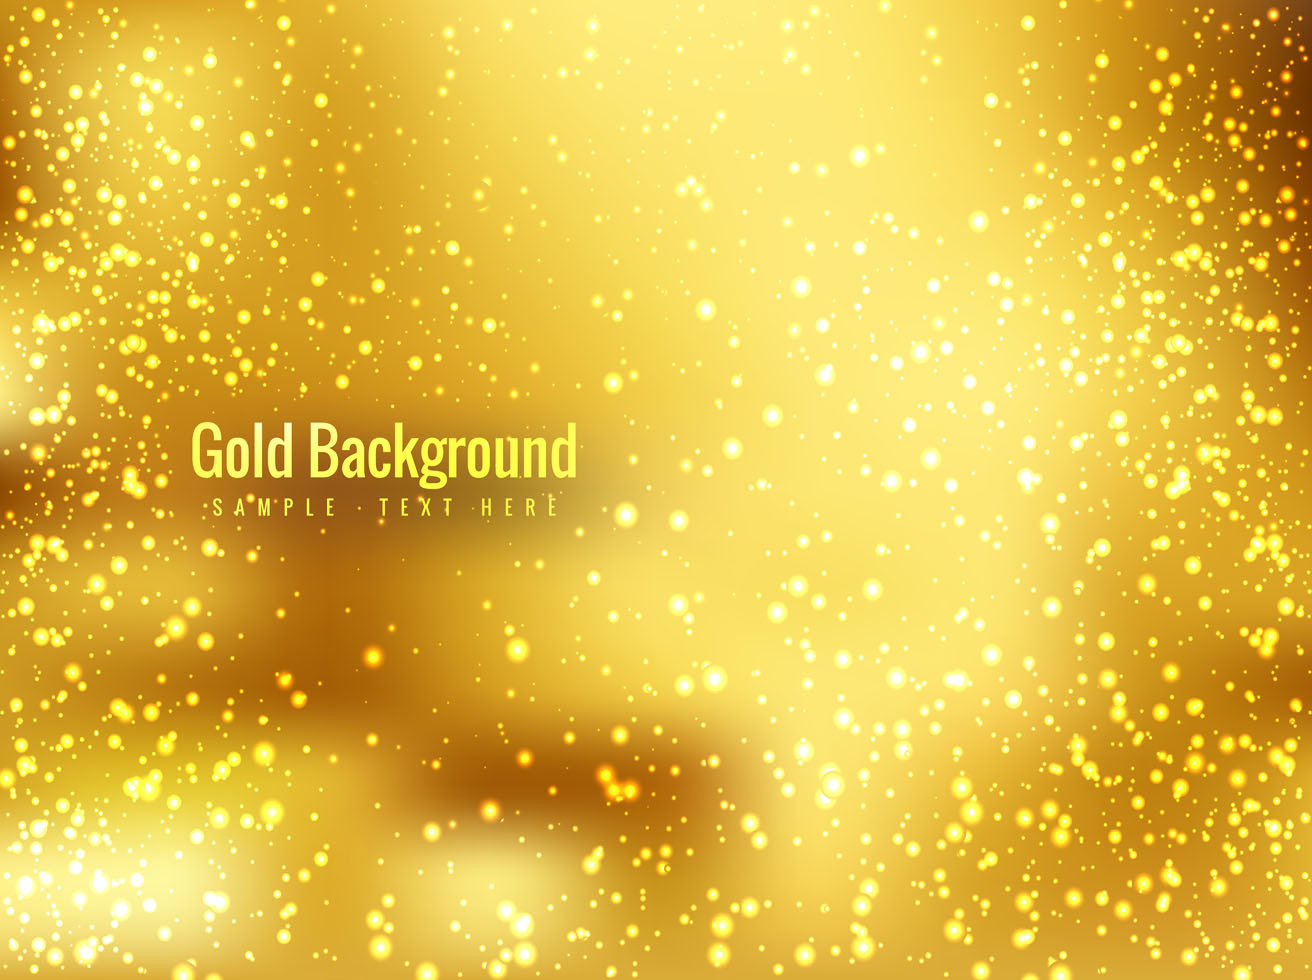 Free Vector Shiny Gold Background